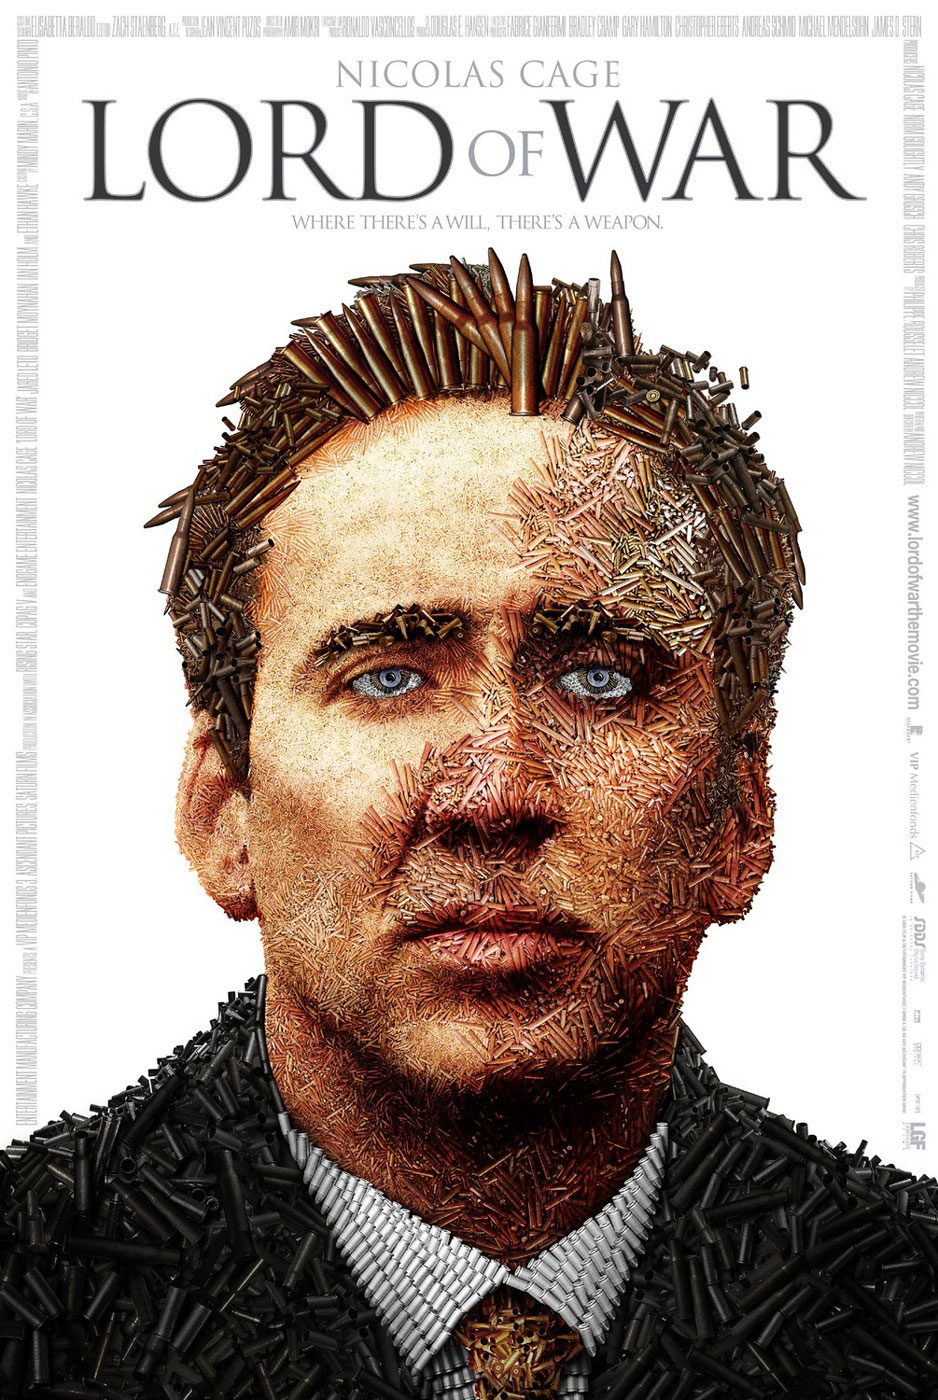 Lord of War - Andrew Niccol (2005) – IMDb